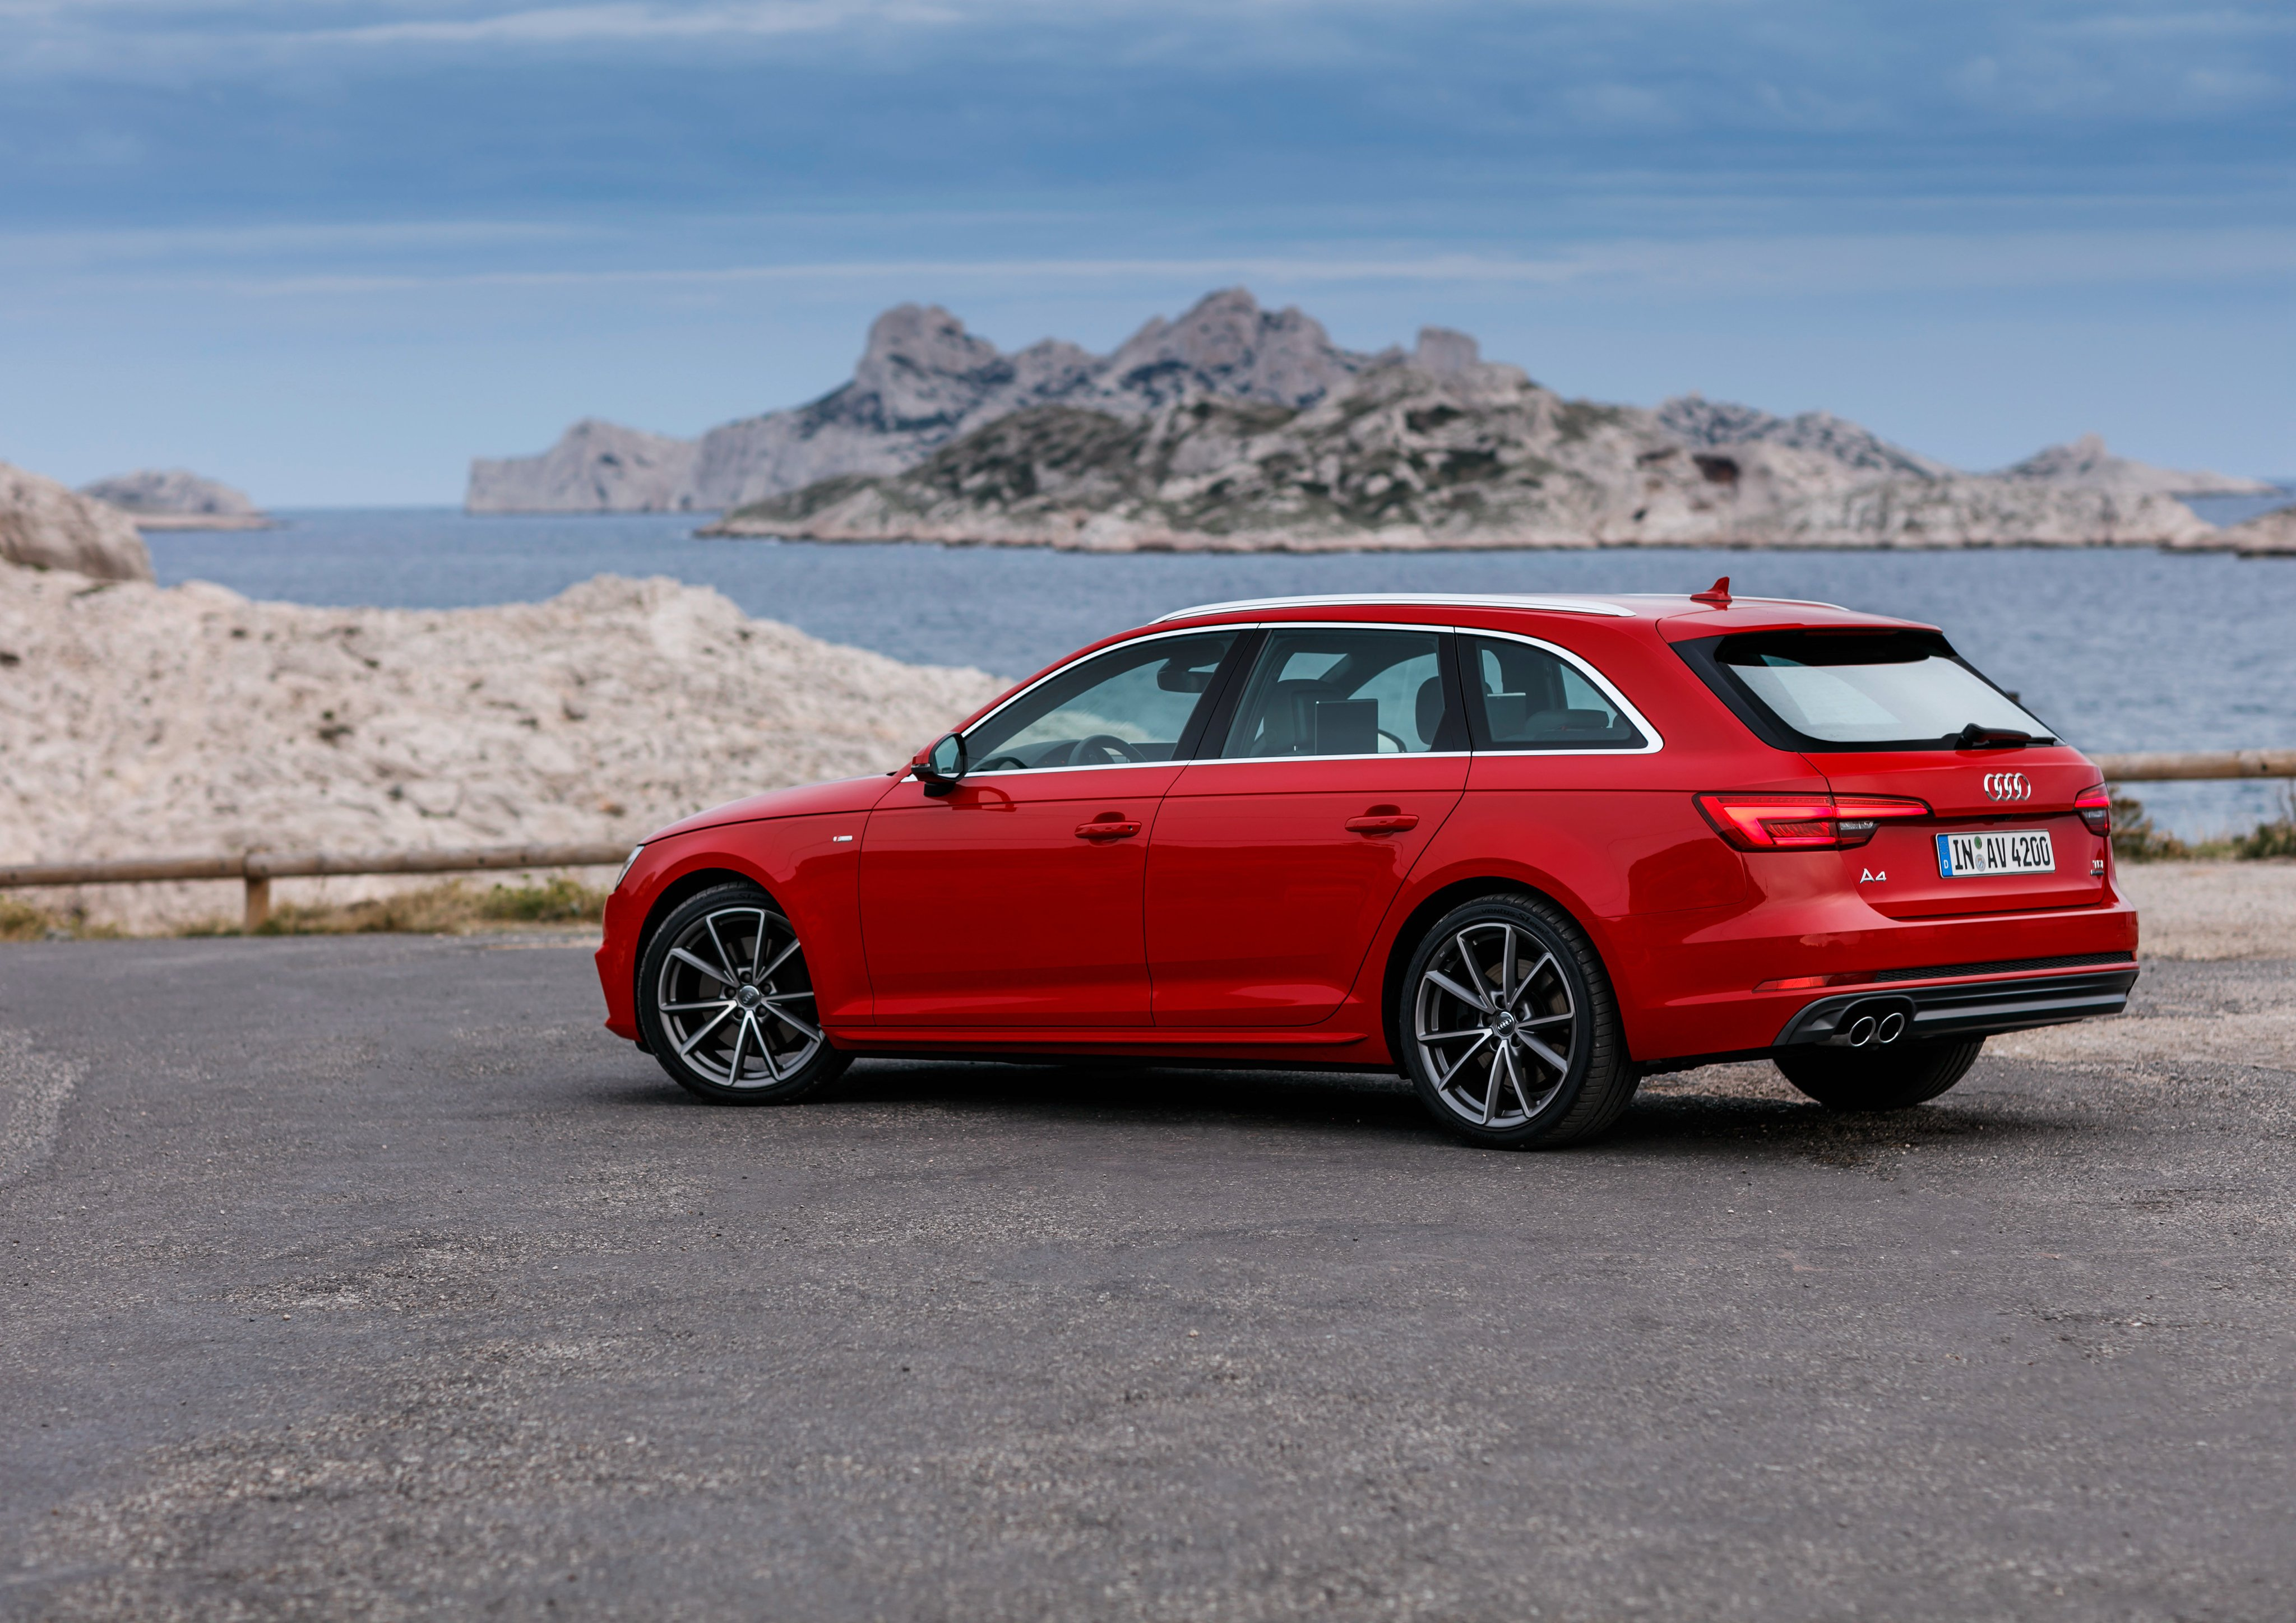 Audi a4 s line station wagon 2015 price south africa 11